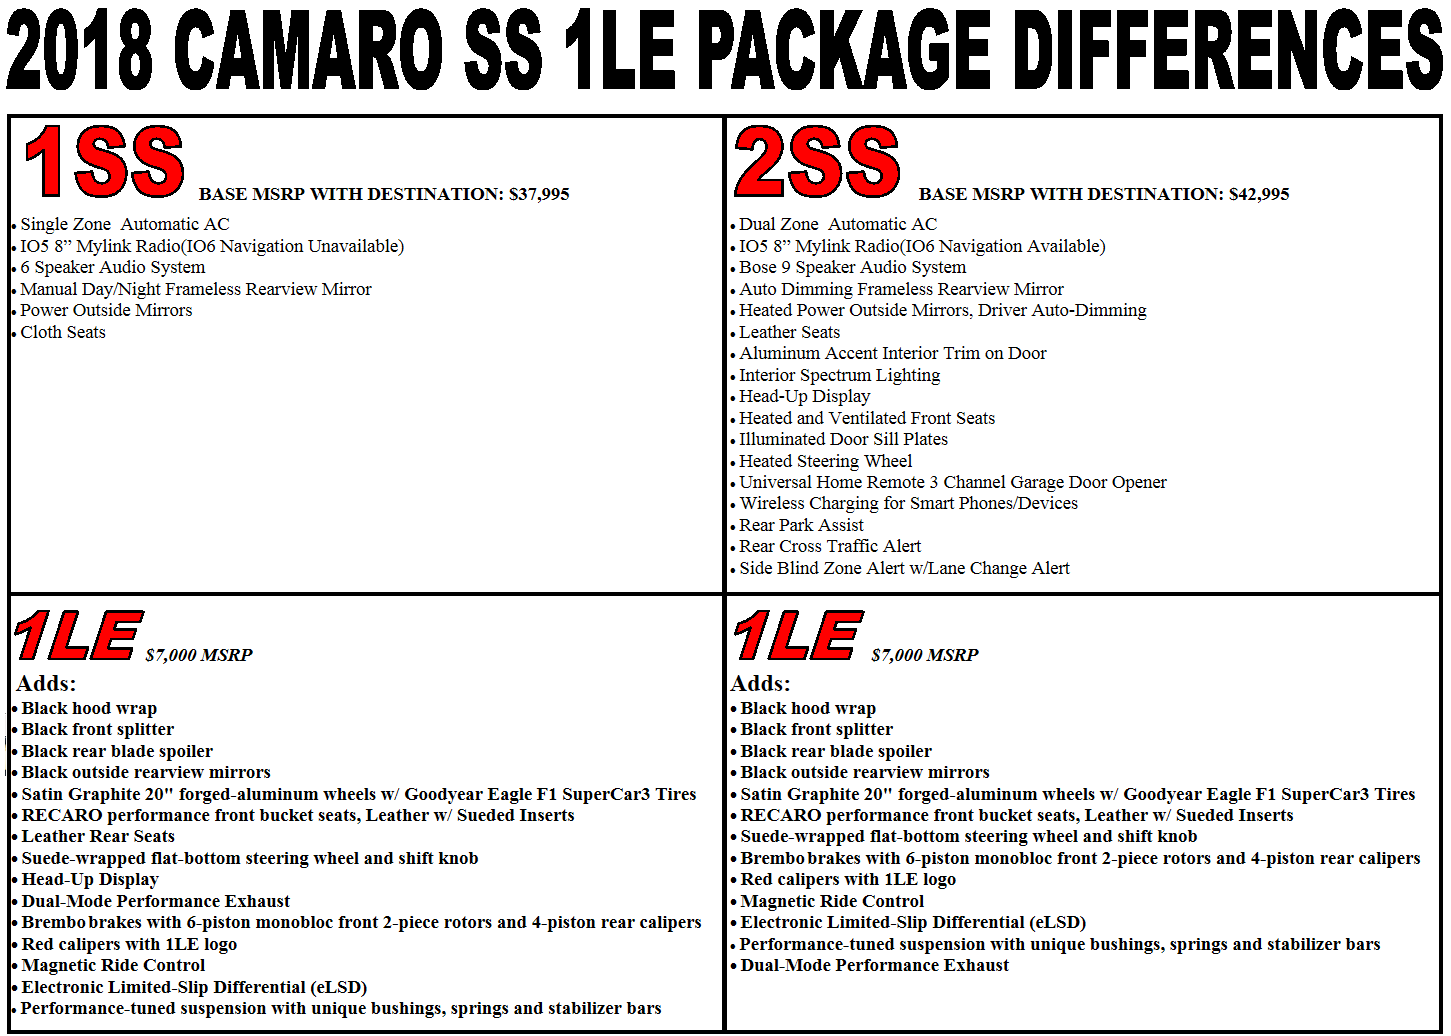 Chart Showing 1SS And 2SS 1LE Package Differences